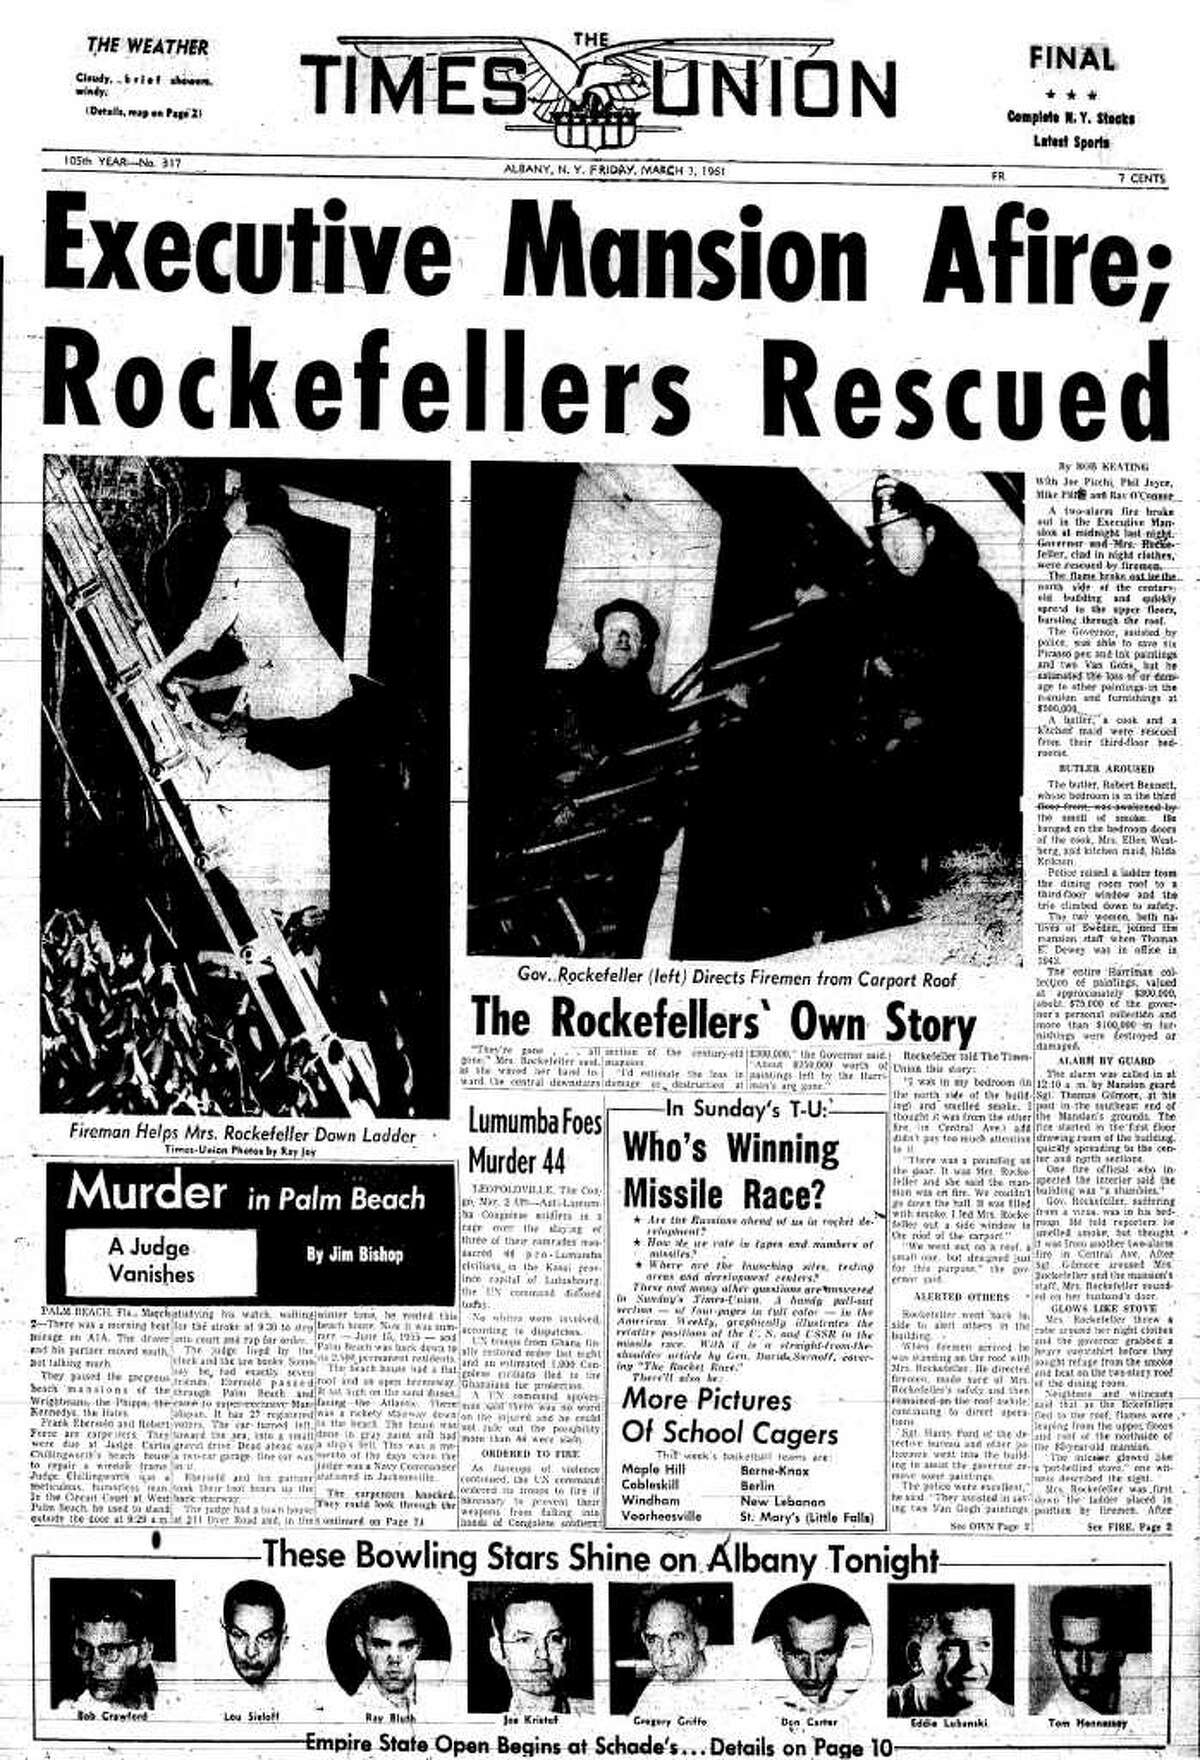 The front page of the Times Union the morning after a fire heavily damaged the Executive Mansion on Eagle Street in Albany. The story reported Gov, Nelson A. Rockefeller and his wife, Mary, were rescued from the burning building.